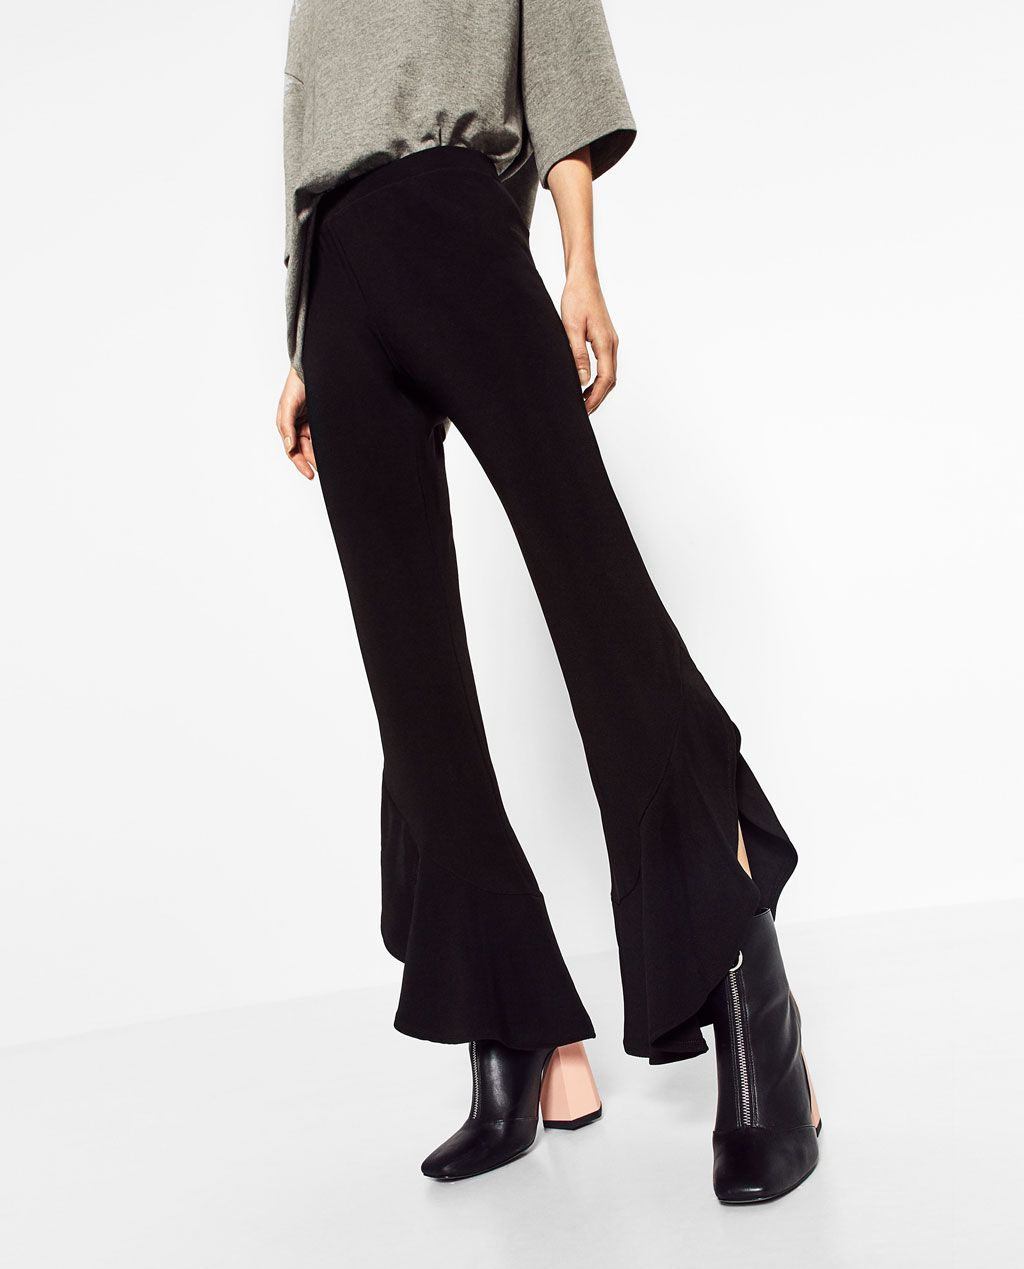 e85c55d0 Image 2 of FRILLED HEM TROUSERS from Zara | Styling+Modeling ...